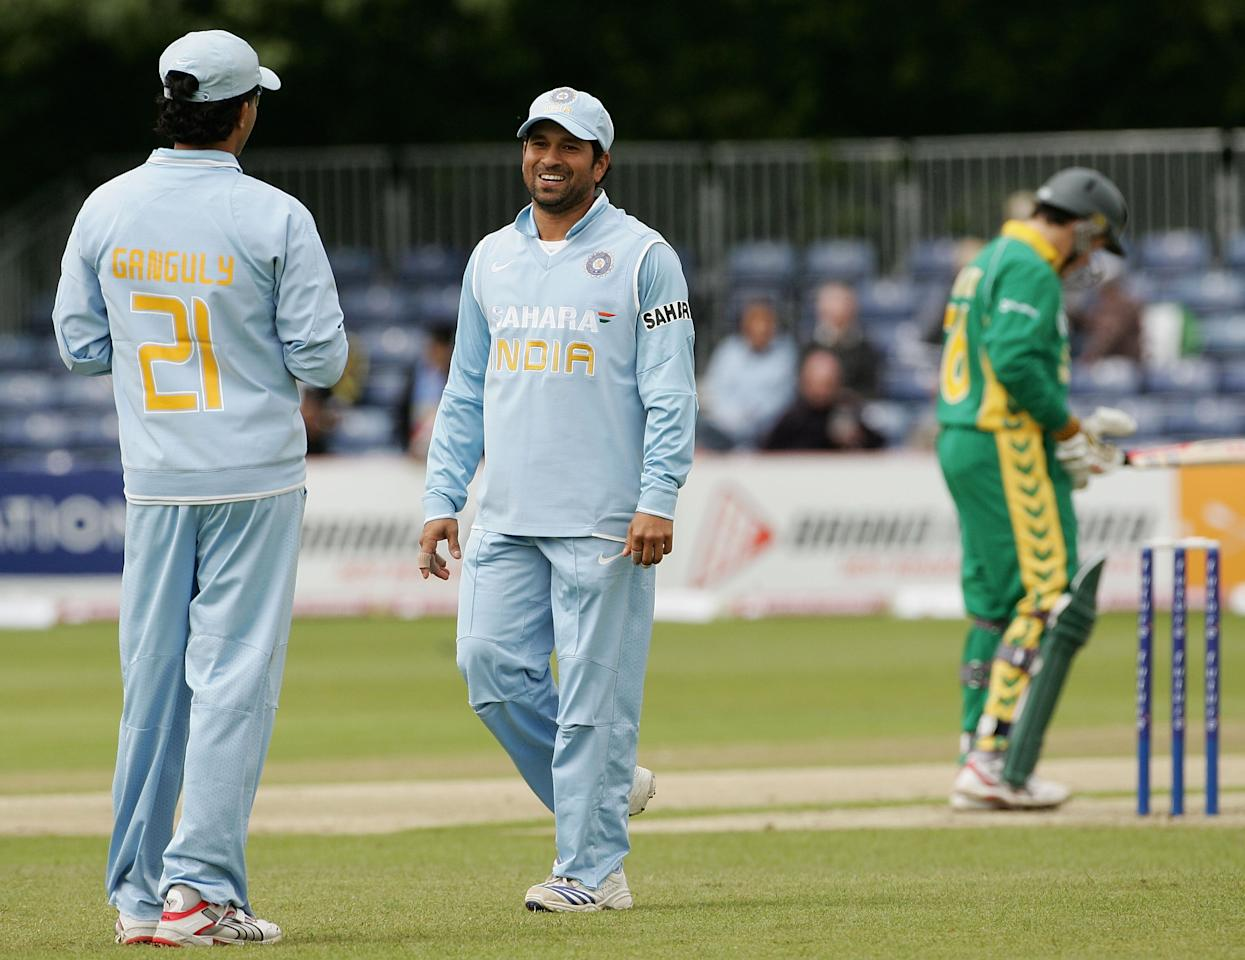 BELFAST, UNITED KINGDOM - JUNE 29:  Sachin Tendulkar (C) of India shares a laugh with team mate Sourav Ganguly during the second One Day International match between South Africa and India at the Civil Service Cricket Club in Stormont on June 29, 2007 in Belfast, Northern Ireland.  (Photo by Hamish Blair/Getty Images)